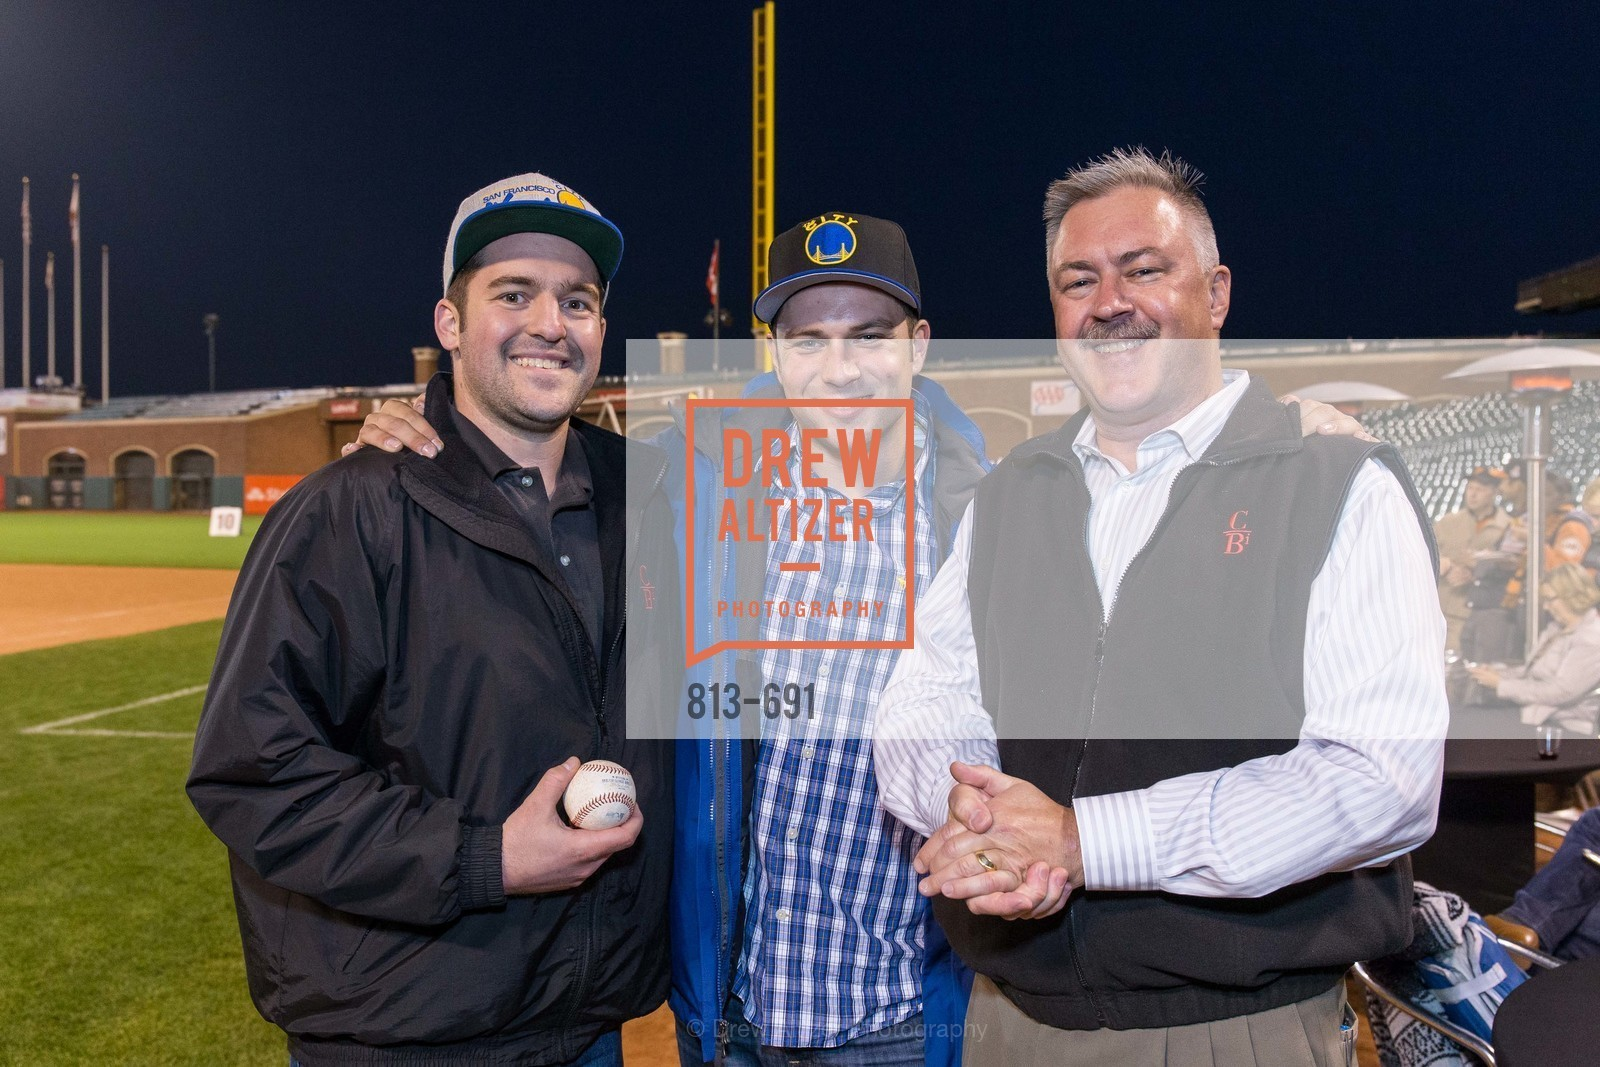 Vince Baldwin, Cody Beratlis, Scott Hagberg, ST. FRANCIS FOUNDATION'S Knock It Out of the Park, US, June 4th, 2015,Drew Altizer, Drew Altizer Photography, full-service agency, private events, San Francisco photographer, photographer california